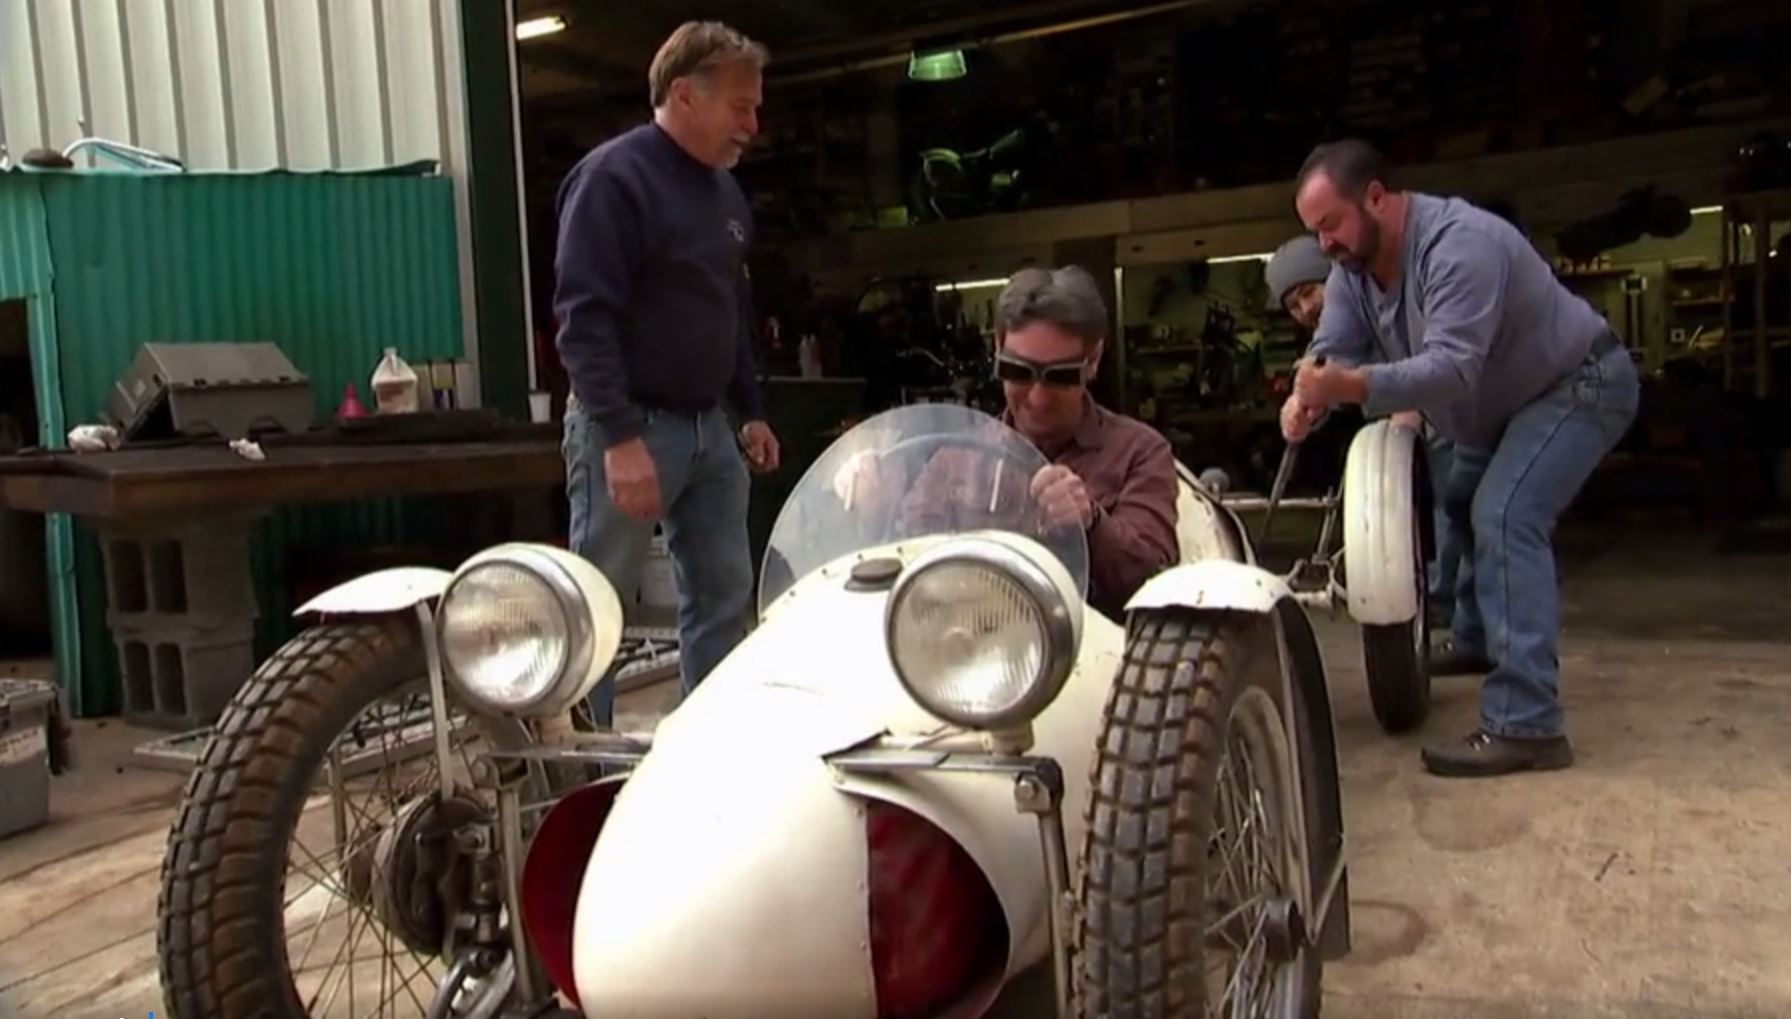 American Pickers' top 11 automotive picks: icons, rockets, and Italian race cars thumbnail